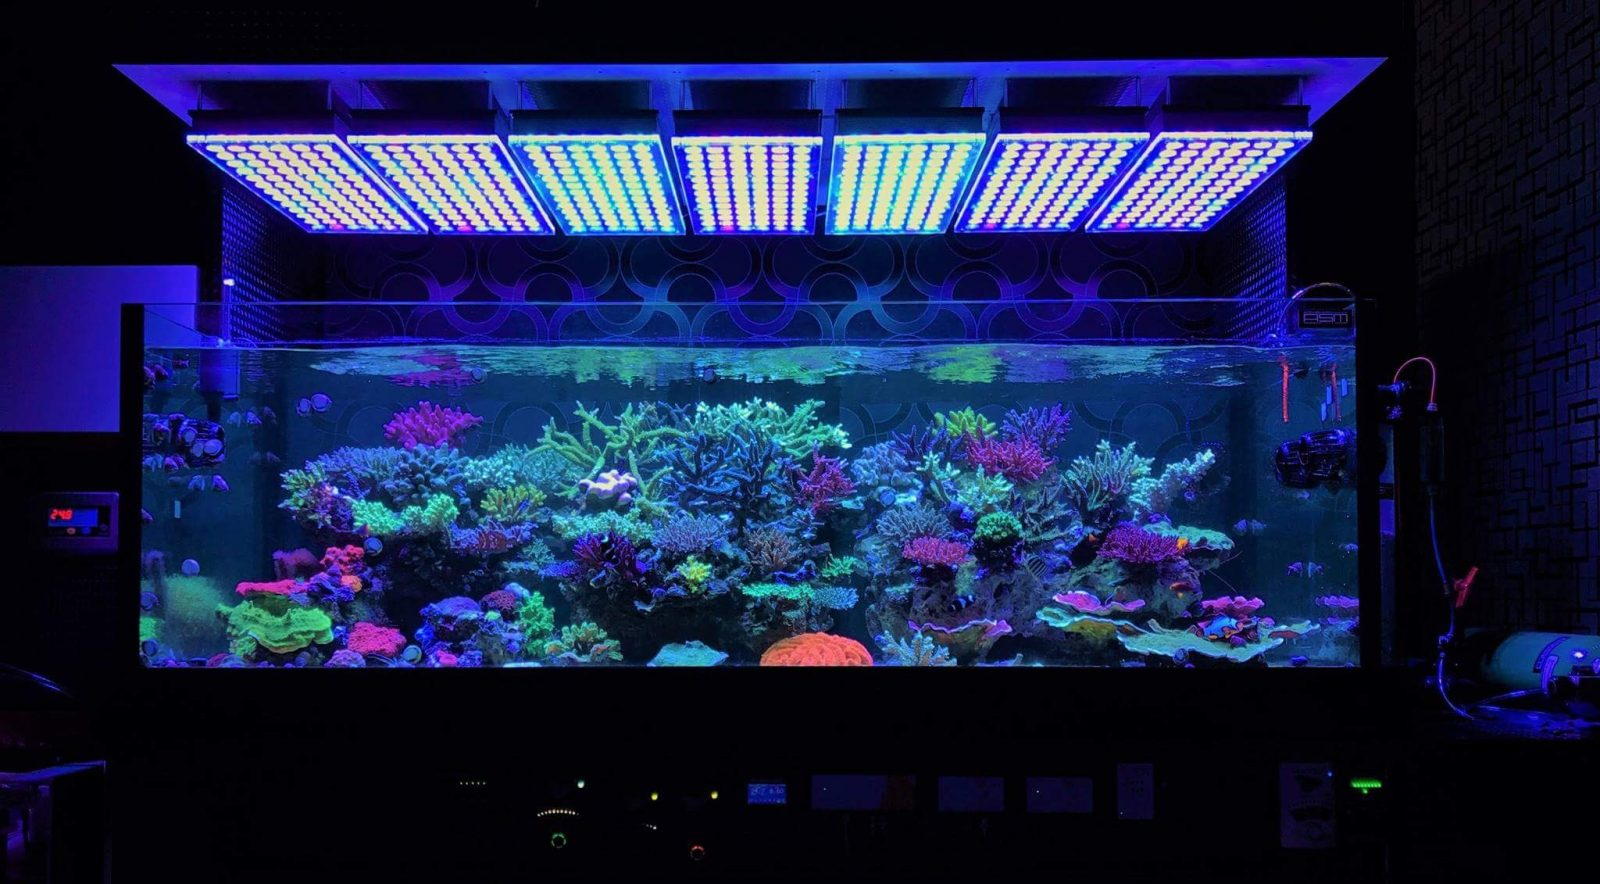 Erstaunlich-Reef-Aquarium-LED-Licht